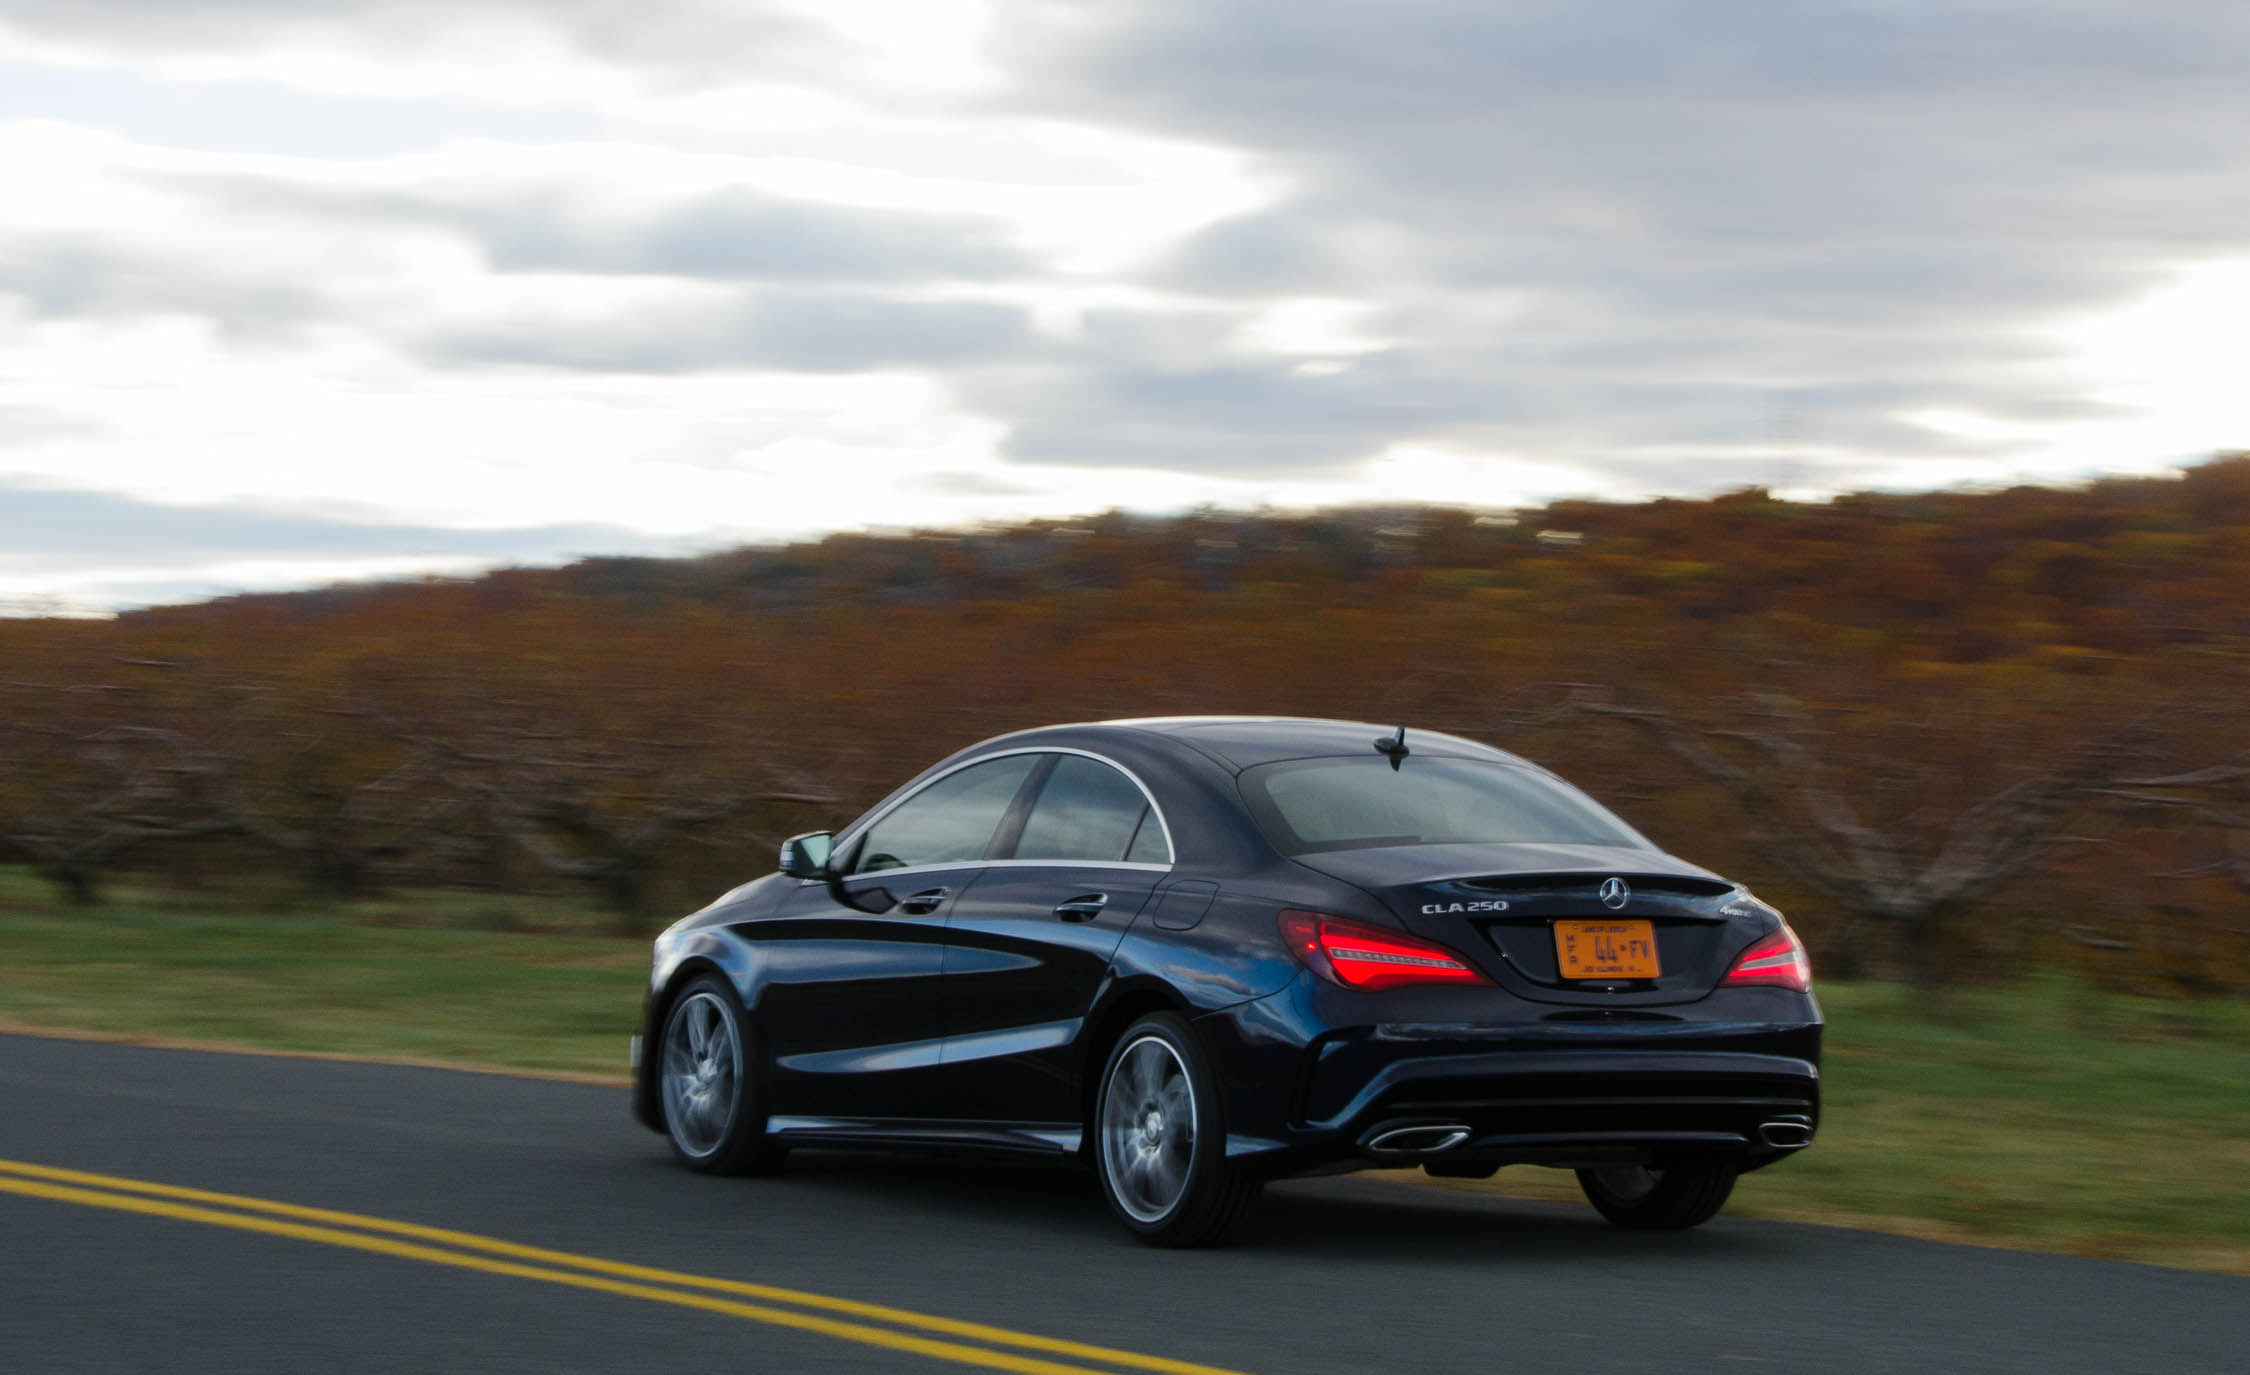 2017 Mercedes Benz CLA250 4MATIC Test Drive Side And Rear View (Photo 20 of 21)